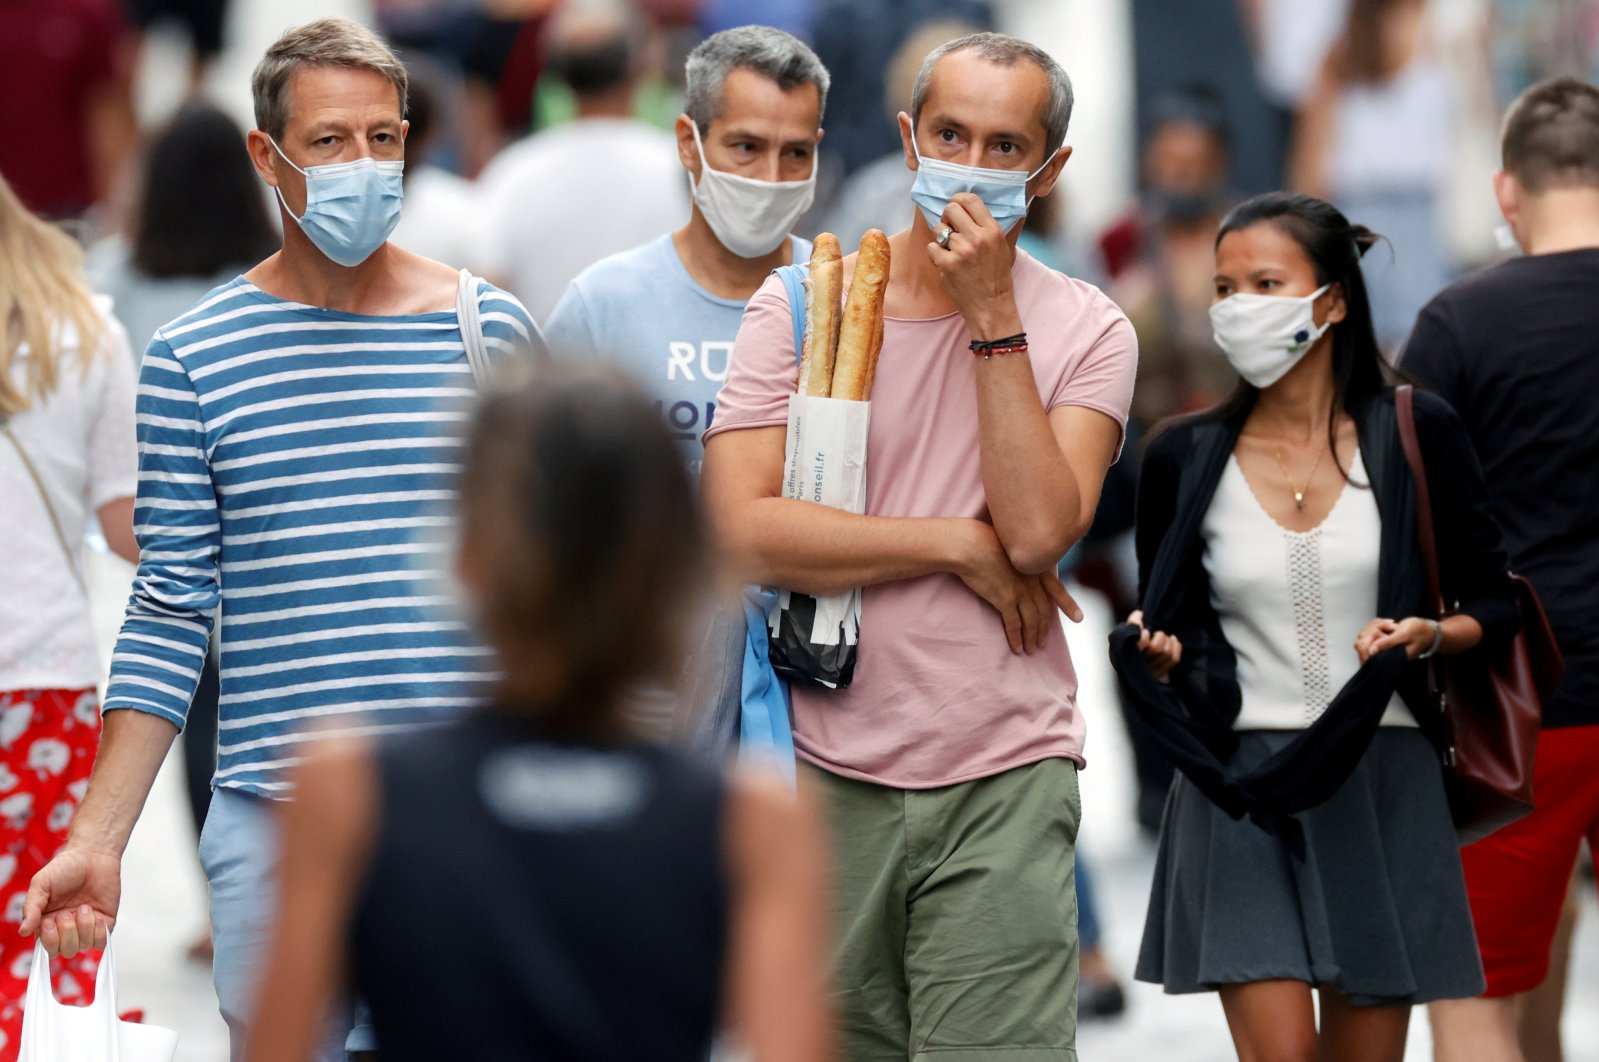 People wearing protective masks walk on Rue Montorgueil in Paris, France, Aug. 22, 2020. (Reuters Photo)